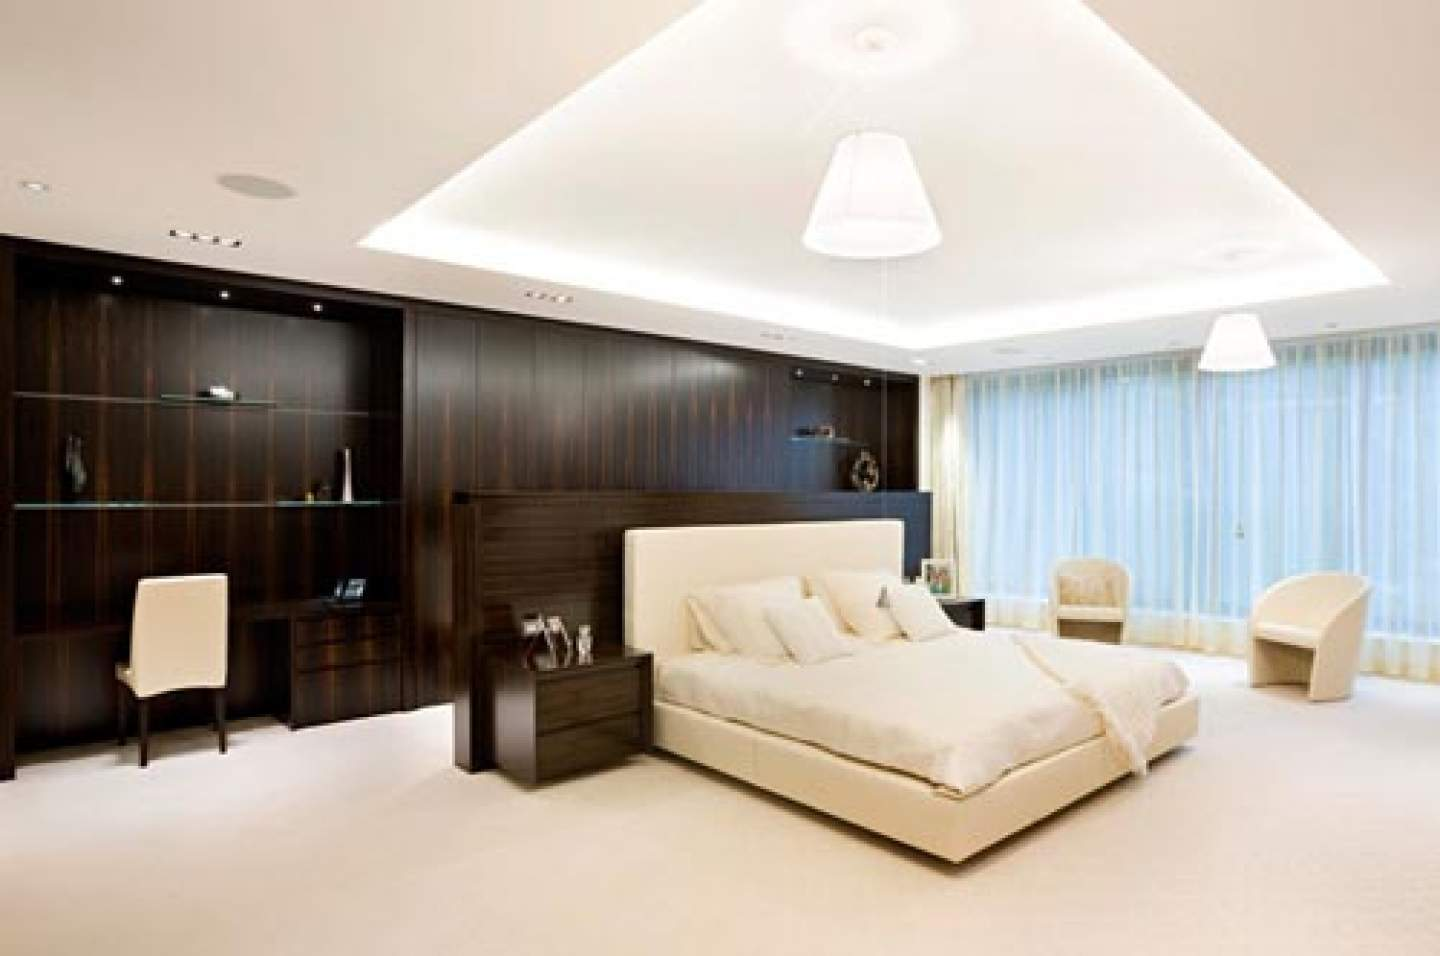 Bed Bedroom Design Houses Interior Interiordesign